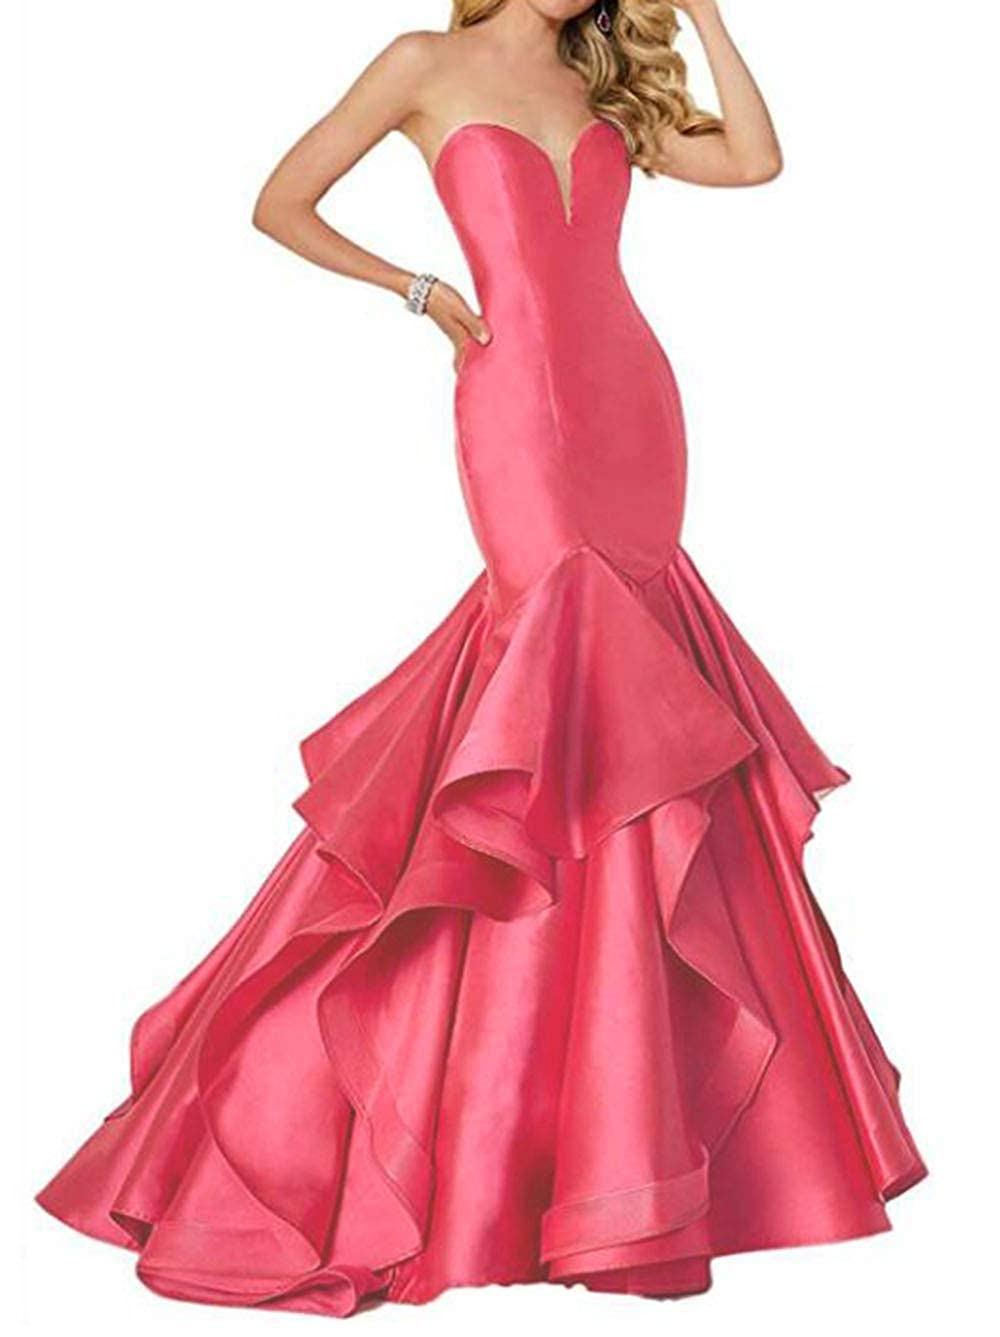 Watermelon alilith.Z Sexy Sweetheart Prom Dresses Mermaid Tired Satin Train Formal Evening Dresses Party Gowns for Women 2019